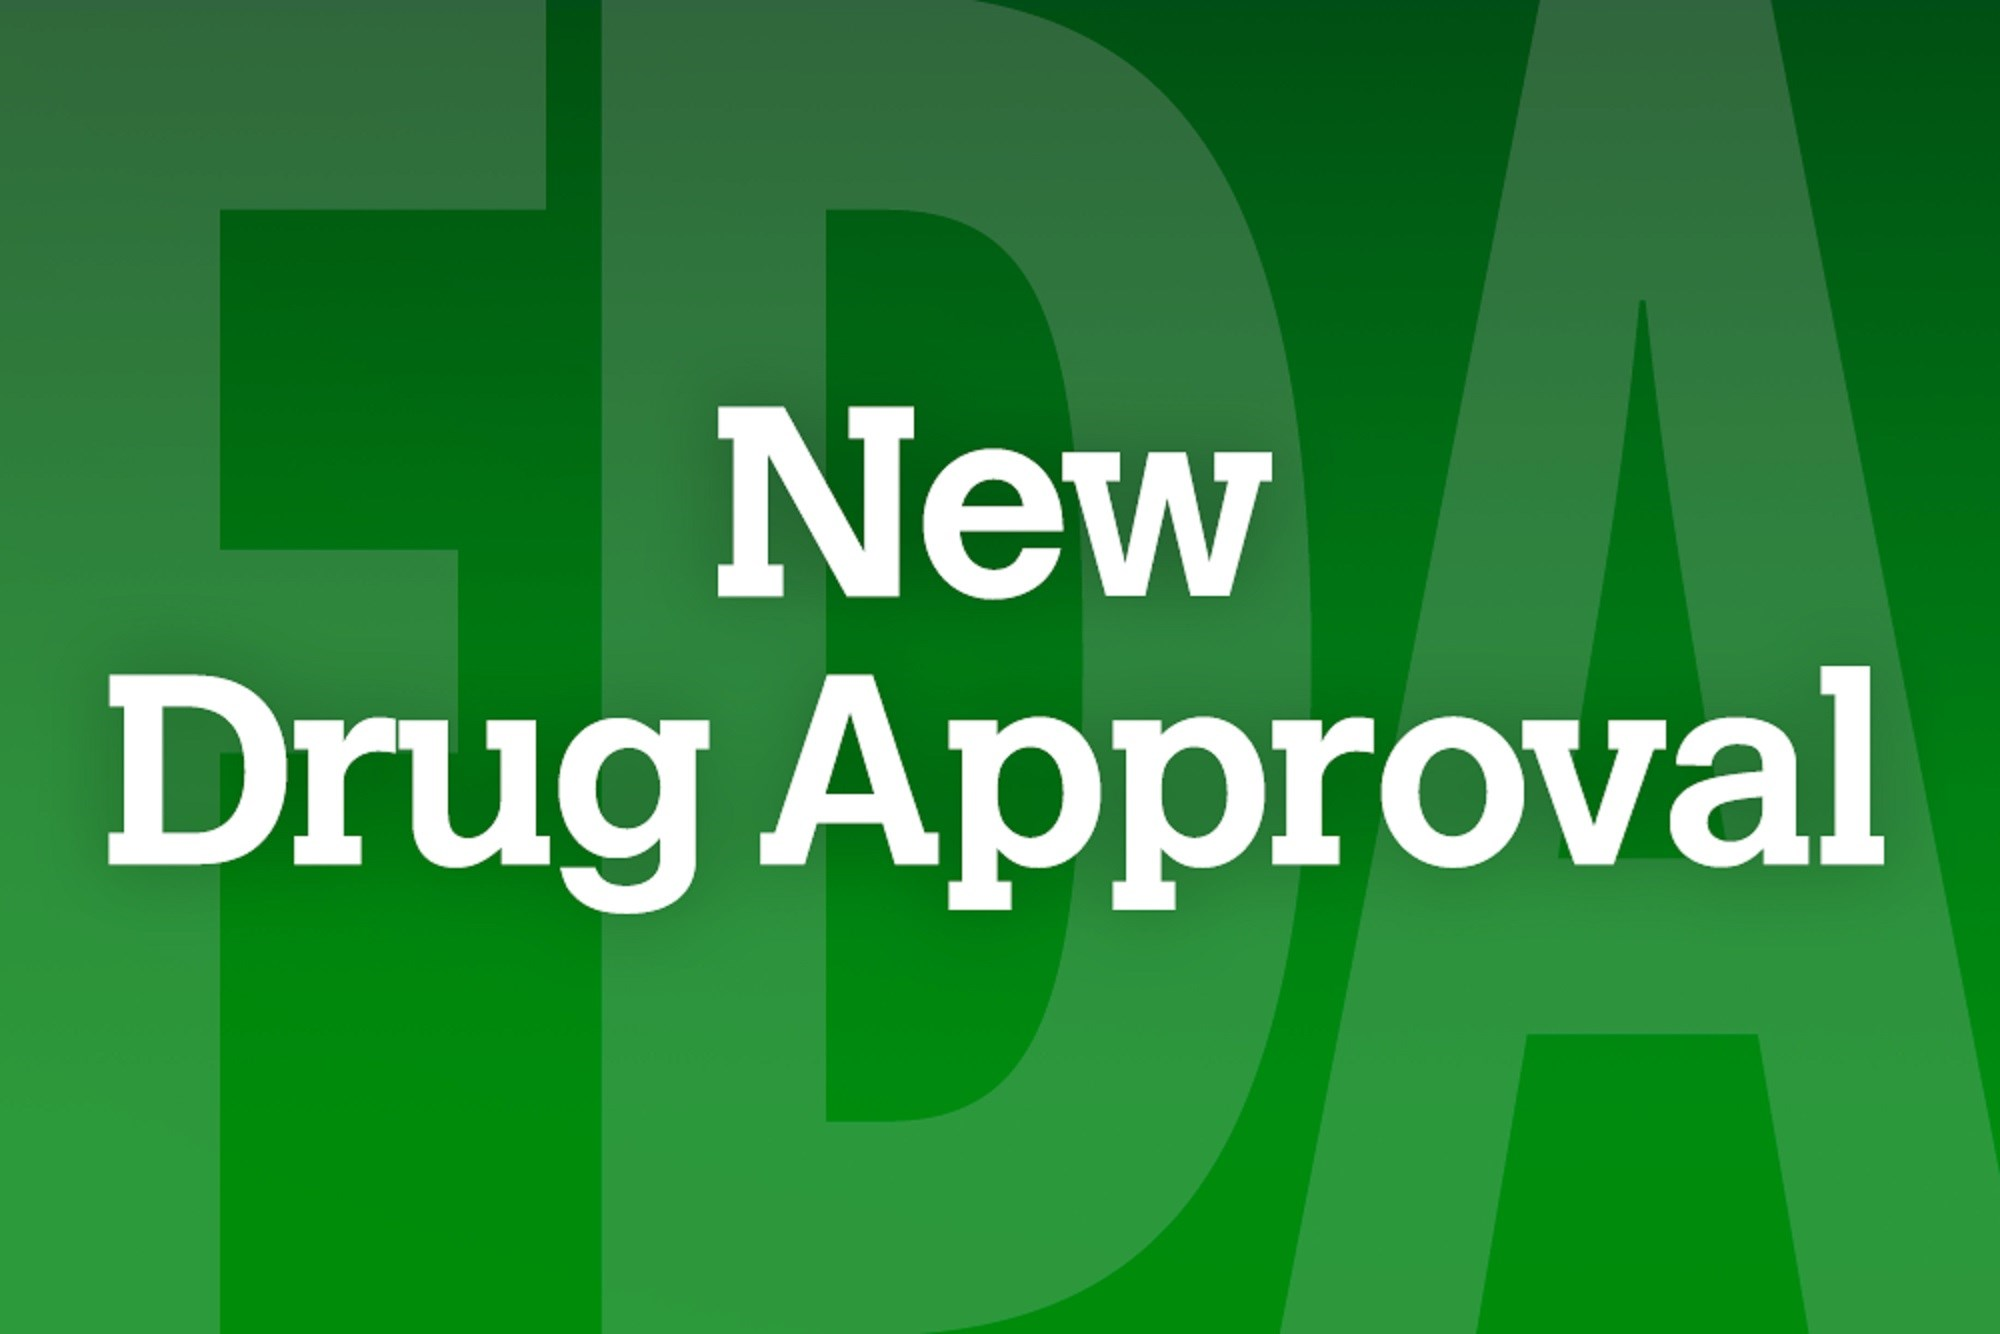 Cassipa Approved as Maintenance Treatment for Opioid Dependence